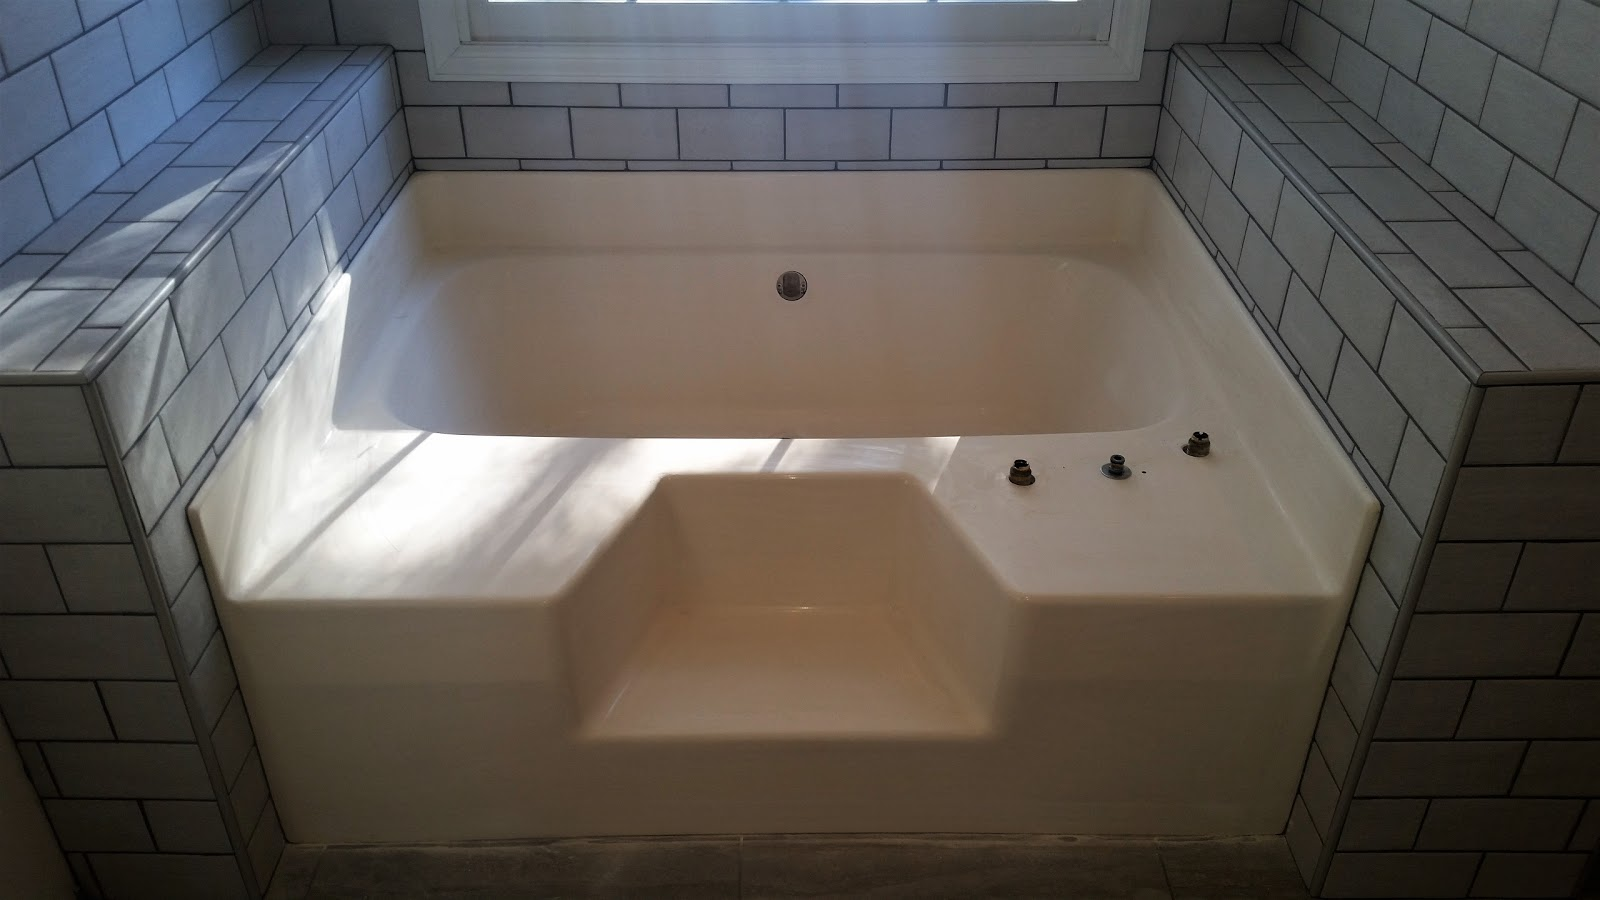 Bathtub Repair Services in Knoxville